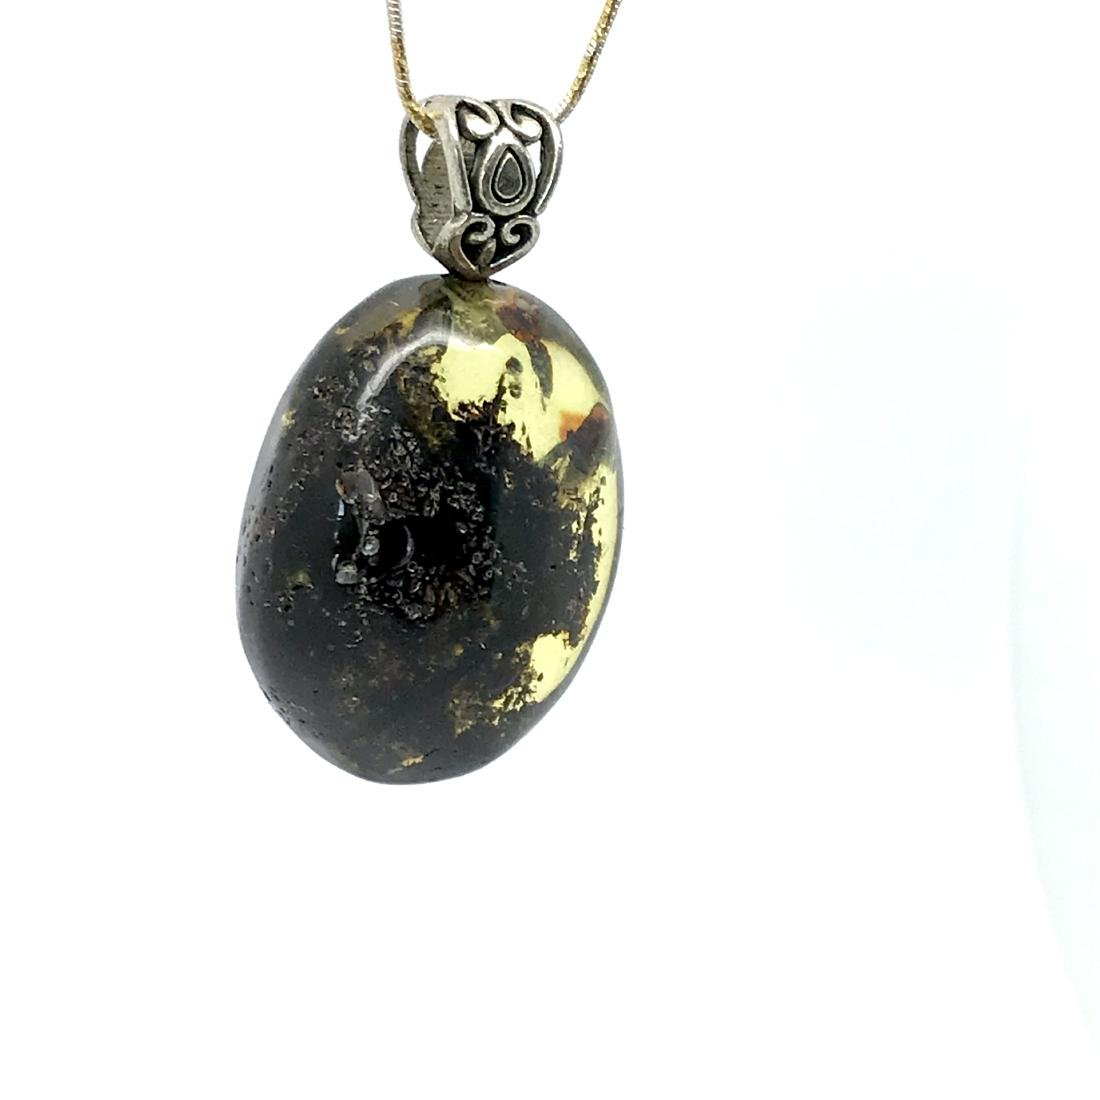 Green Baltic amber silver pendant charm 40x24mm - 2